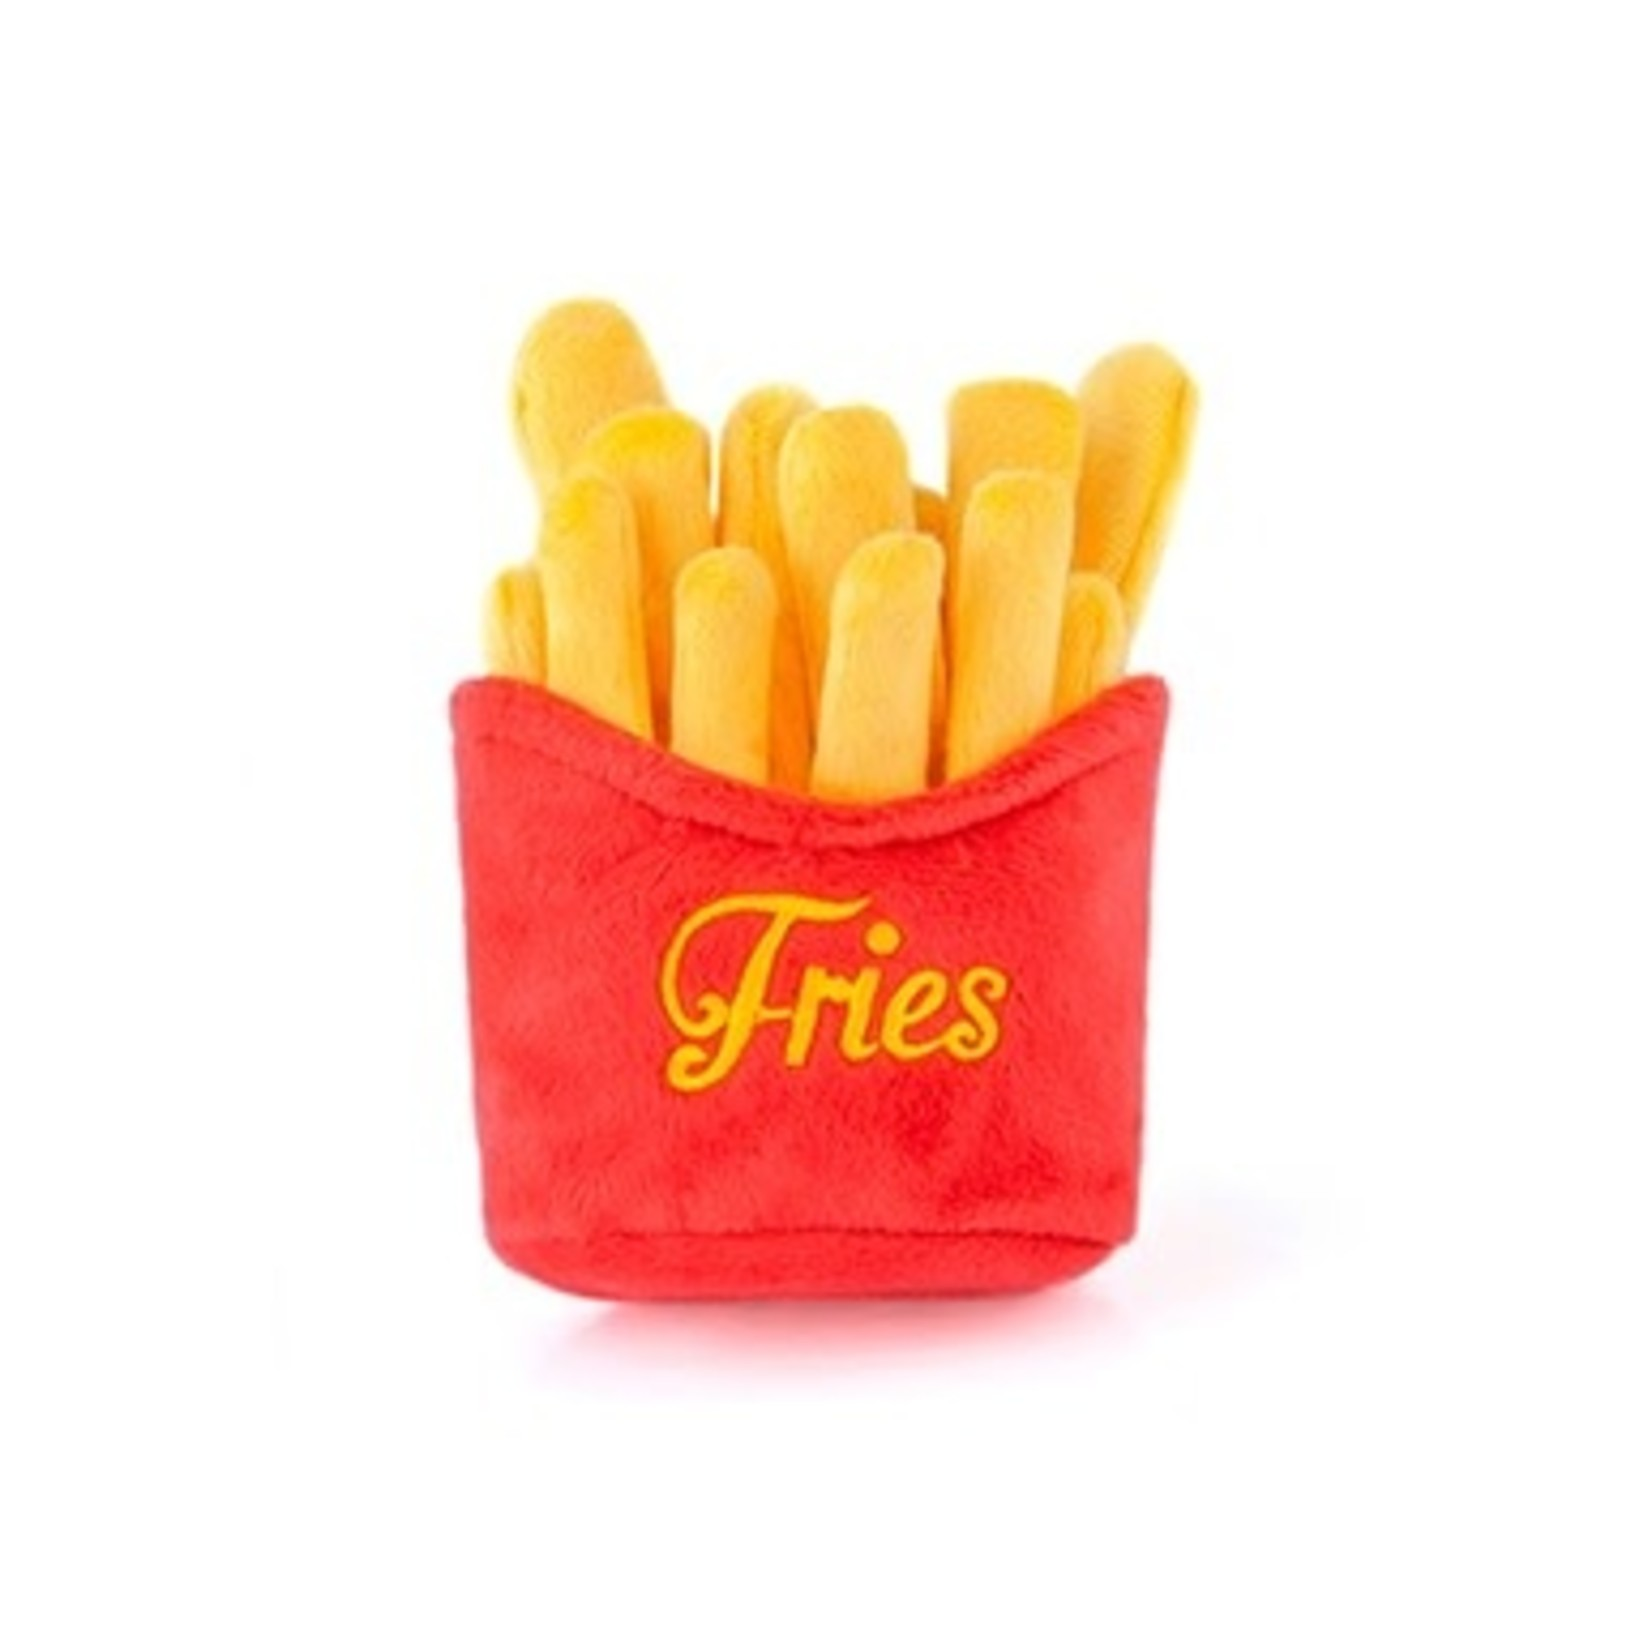 PLAY PLAY French Fries (SPECIAL MINI SIZE)